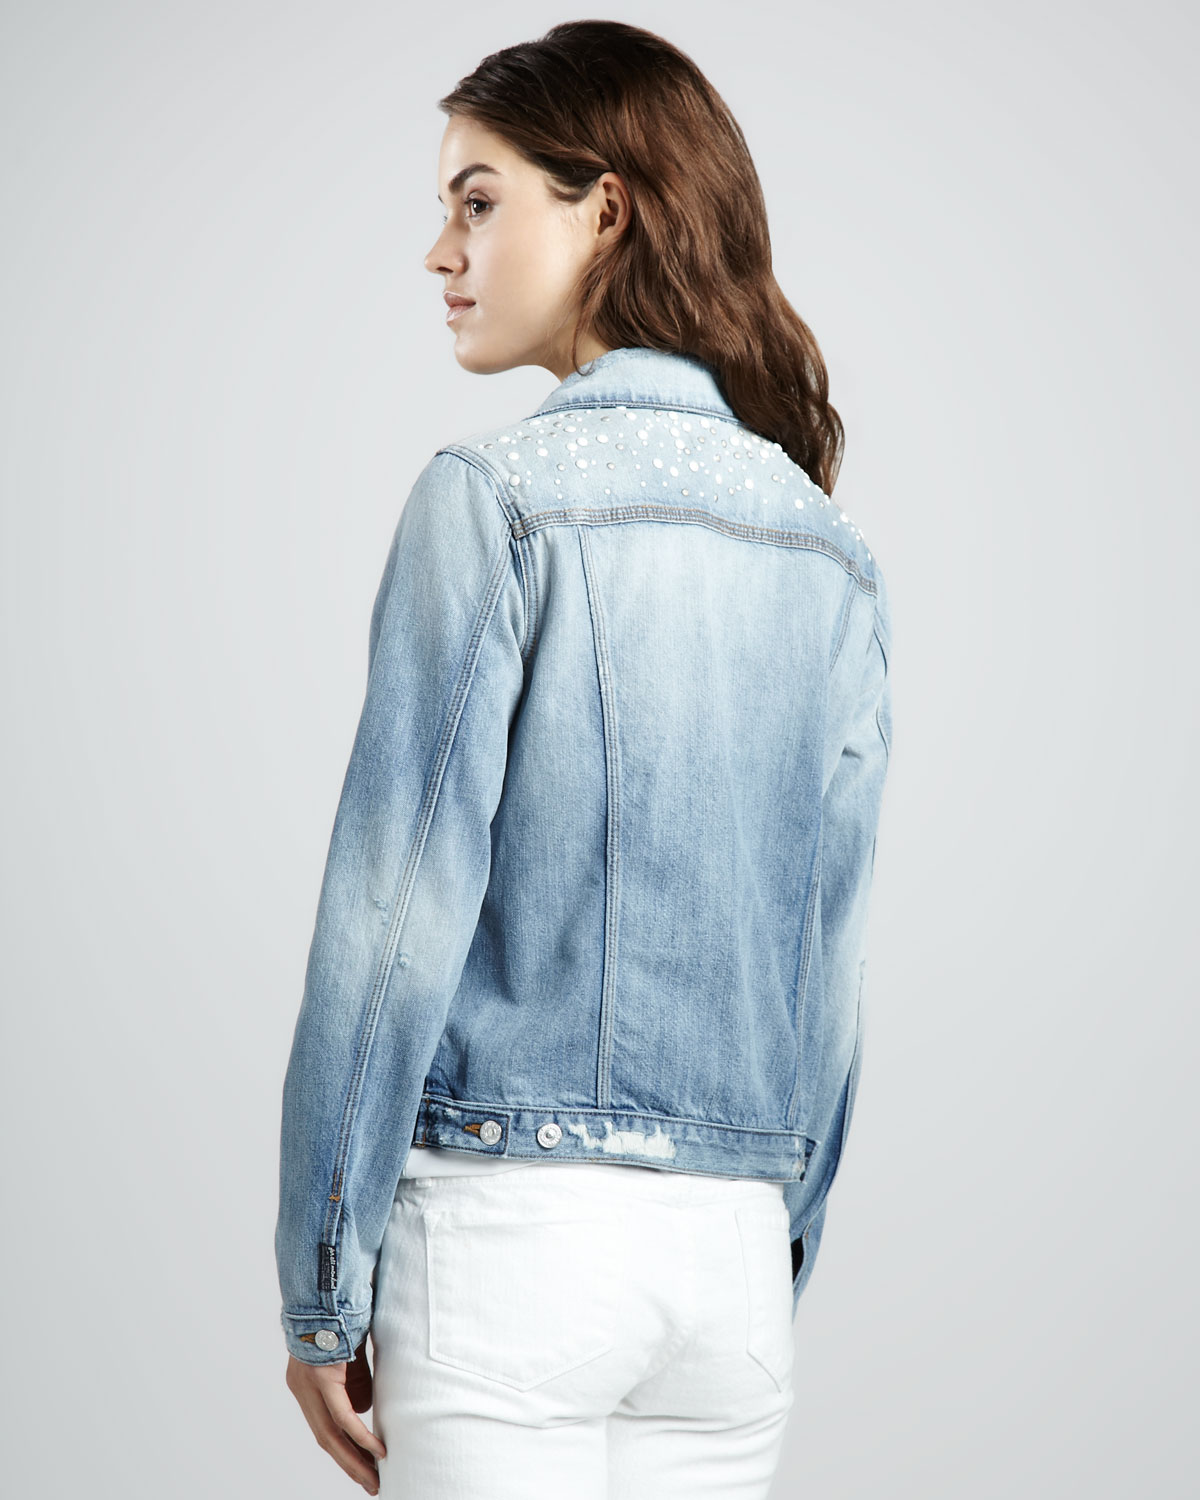 16a35148112 Lyst - 7 For All Mankind Studded Denim Jacket in Blue